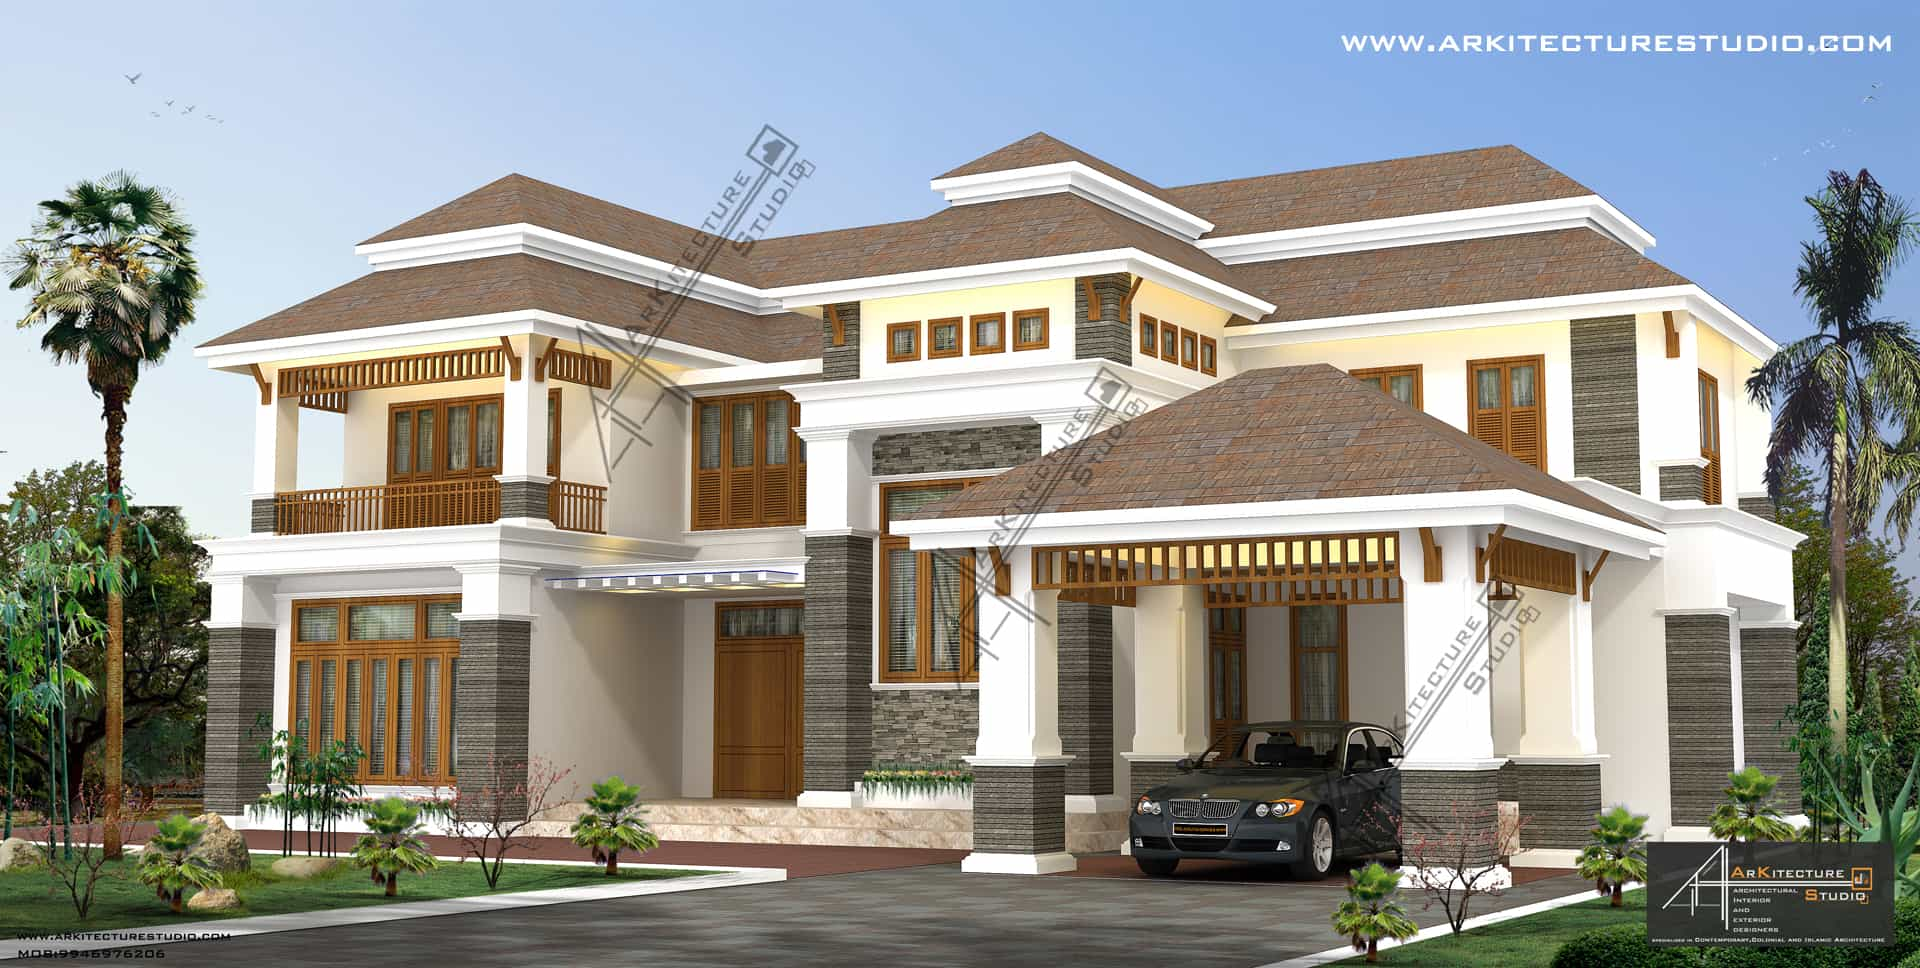 Colonial style house designs in kerala at 3500 sqft 5000 for Colonial style home design in kerala